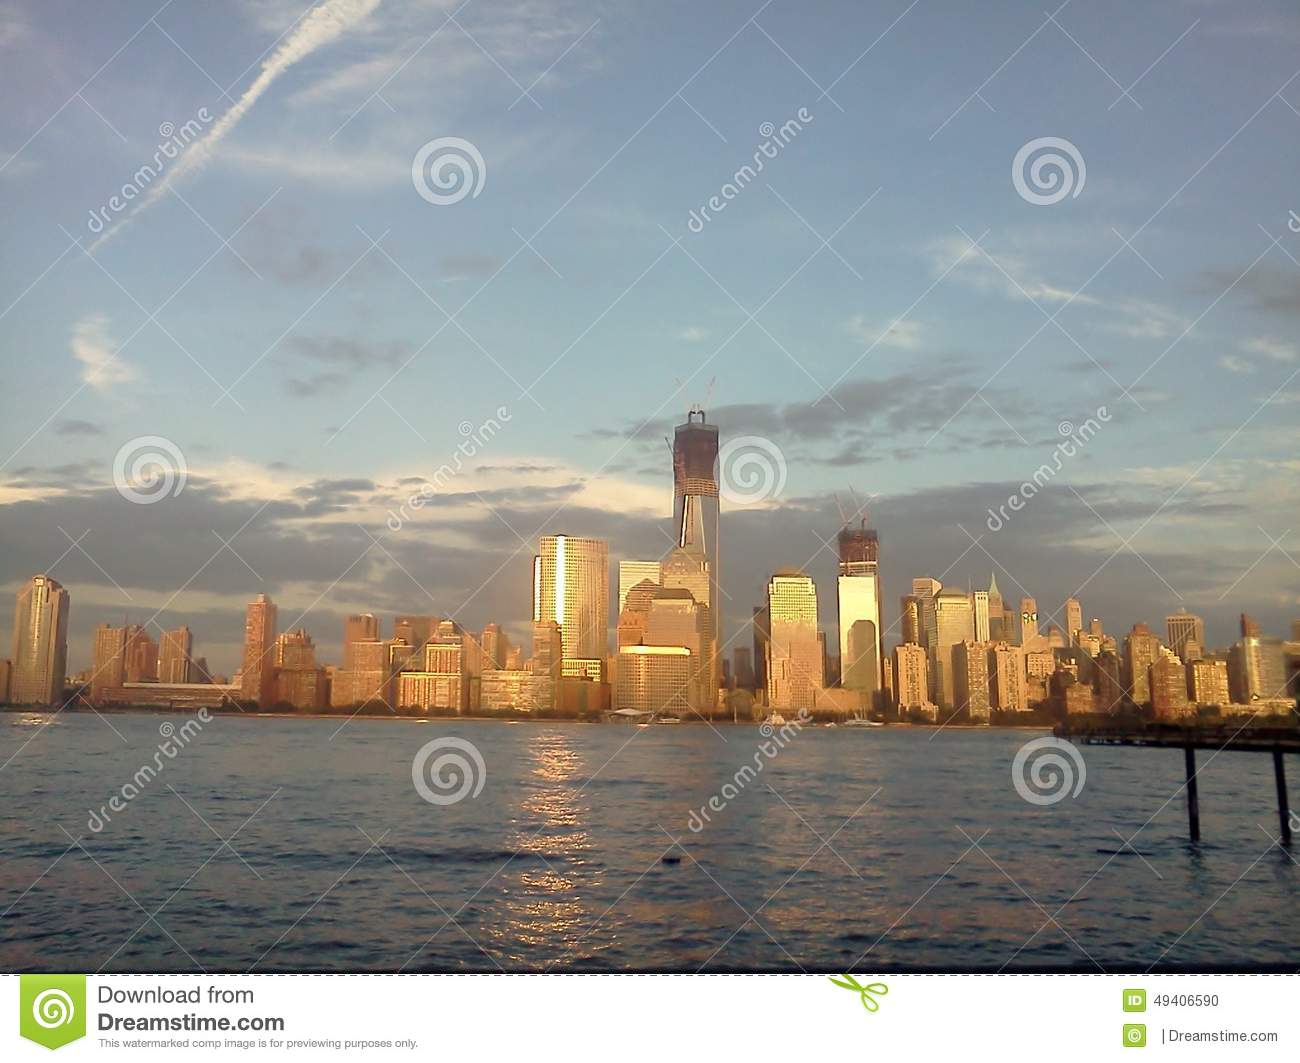 Download New York stockfoto. Bild von york, gebäude, gold, marken - 49406590